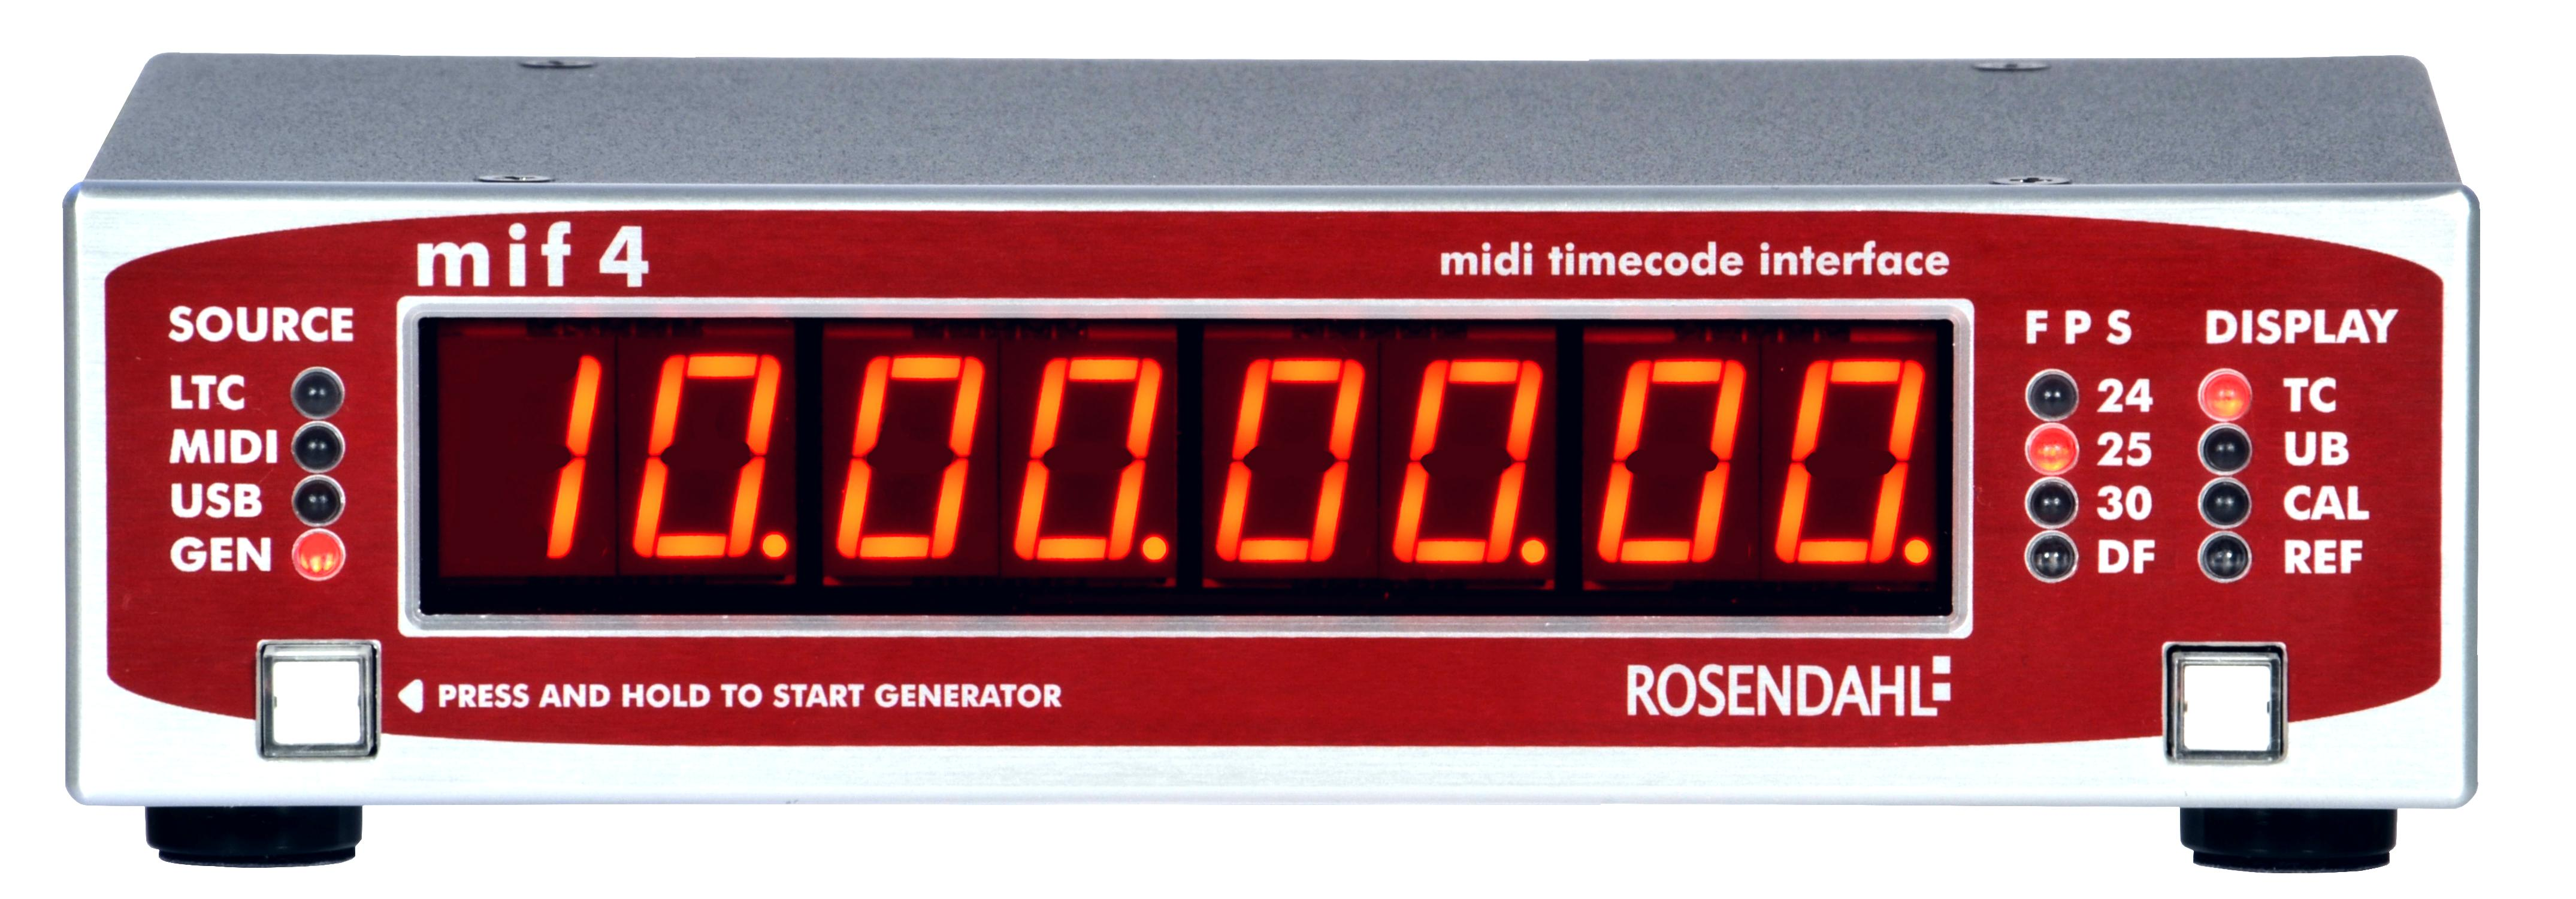 Rosendahl MIF4 - professional MIDI timecode interface (front view)